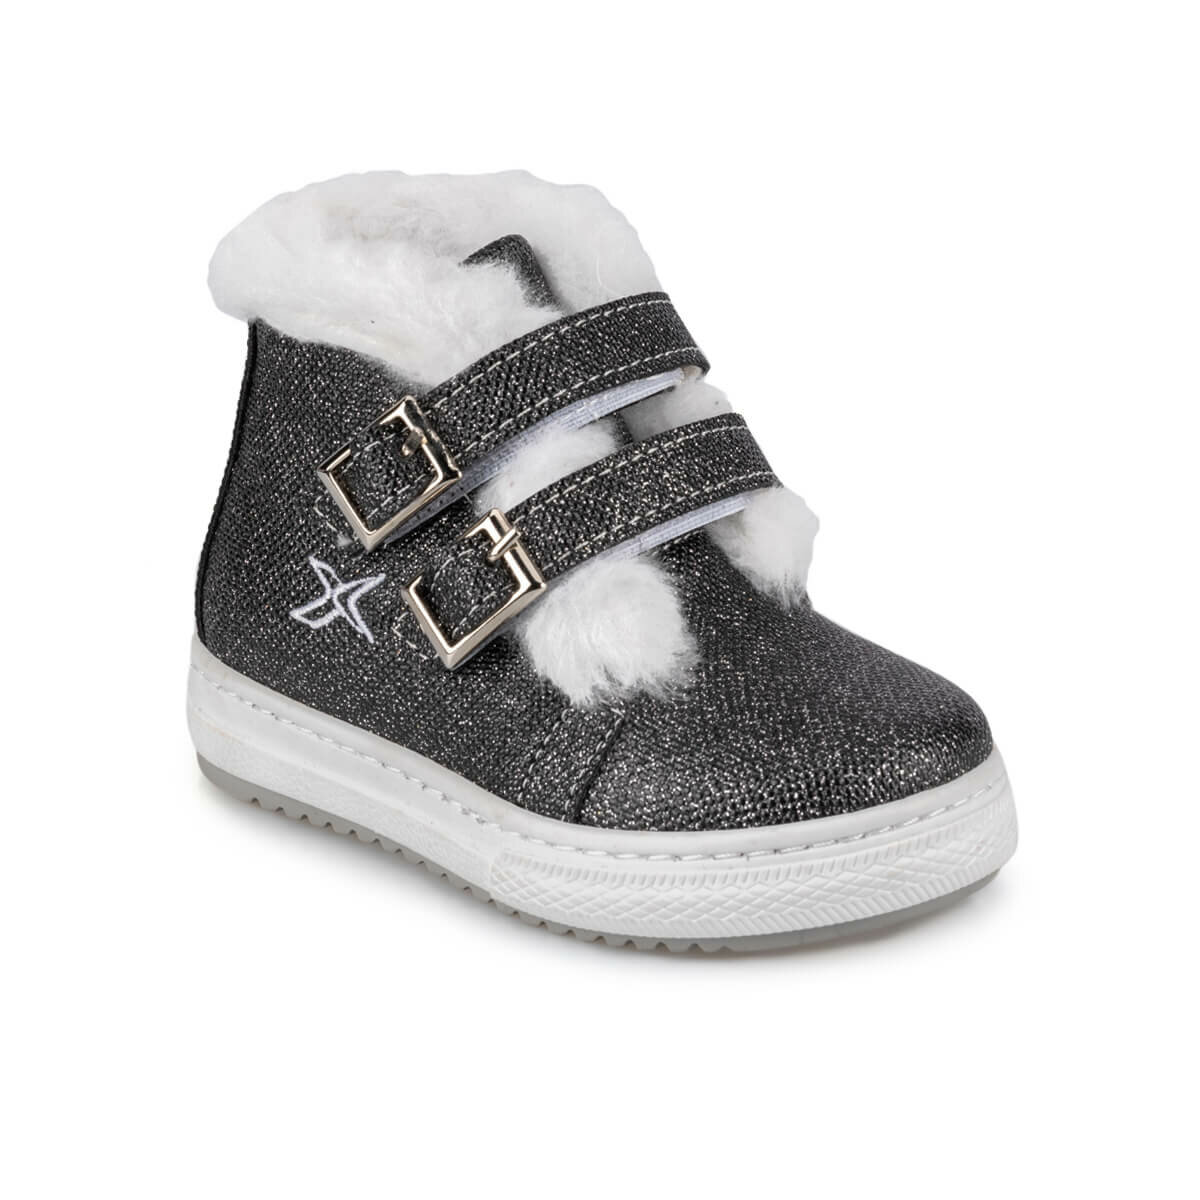 FLO HOLA 9PR Gray Female Child Boots KINETIX